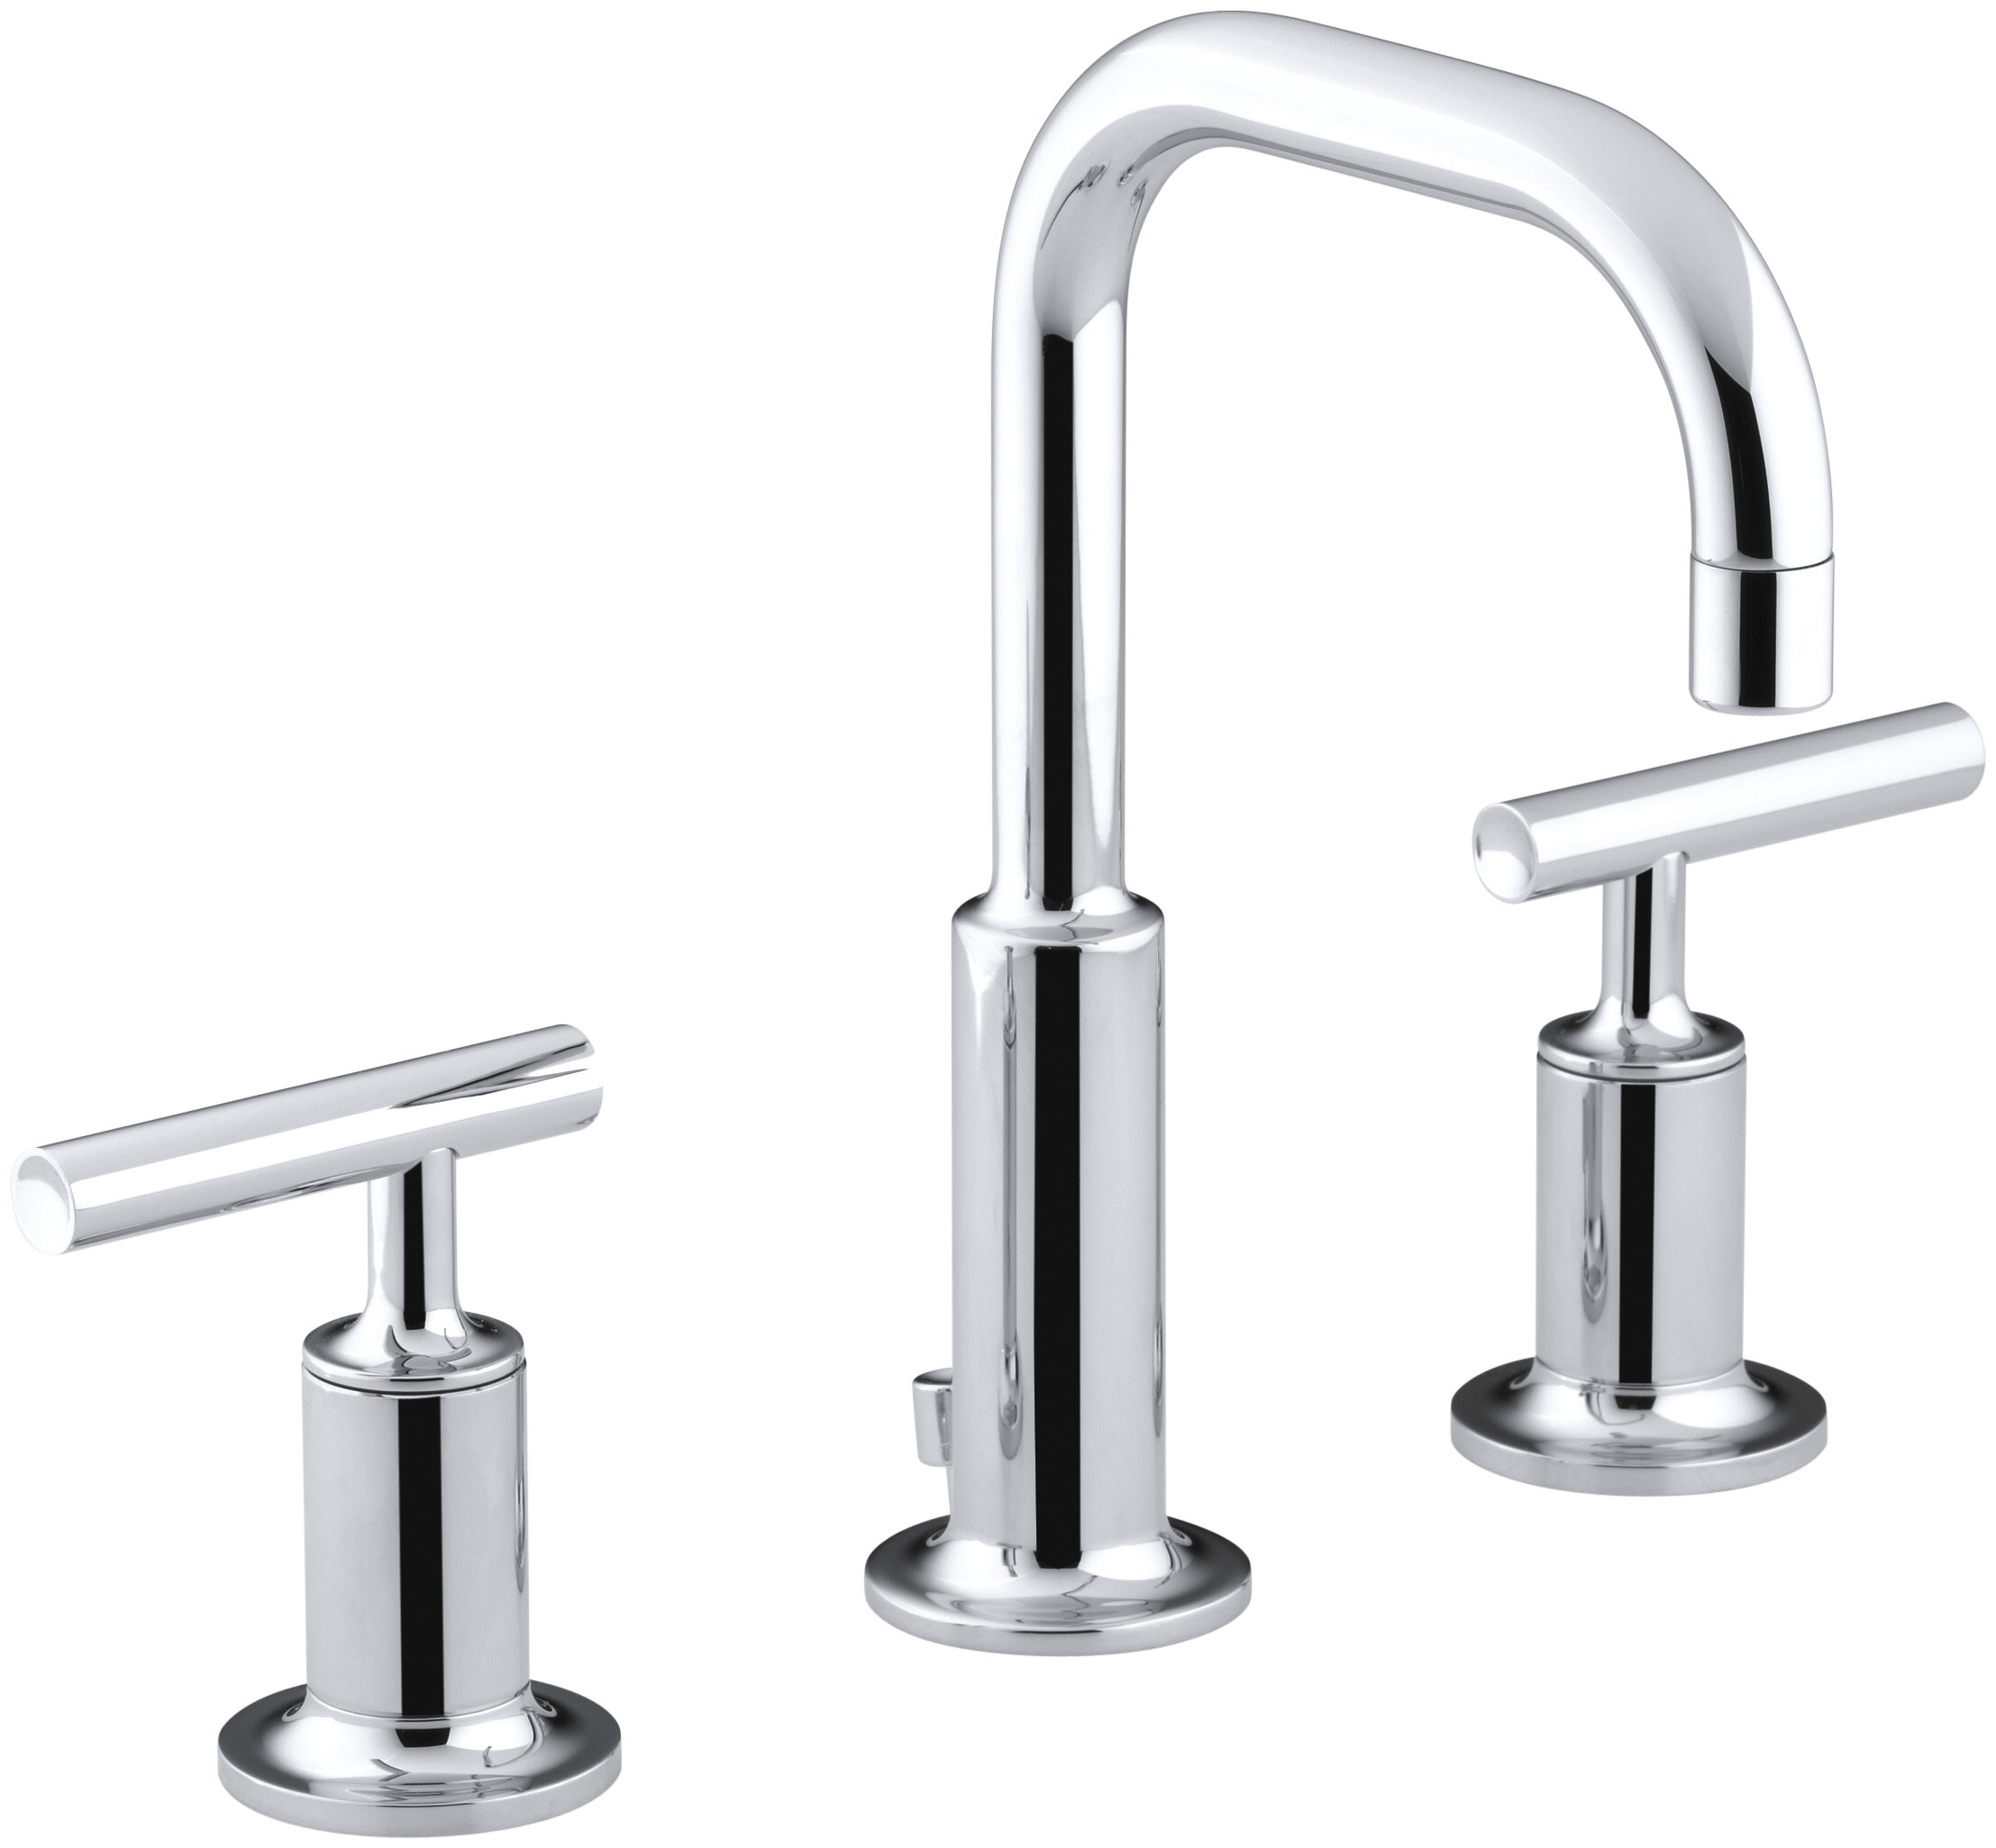 Kohler Purist Bathroom Faucet. K 14406 4 Bgdblbn Kohler Purist Widespread Bathroom Faucet With Drain Assembly Reviews Wayfair